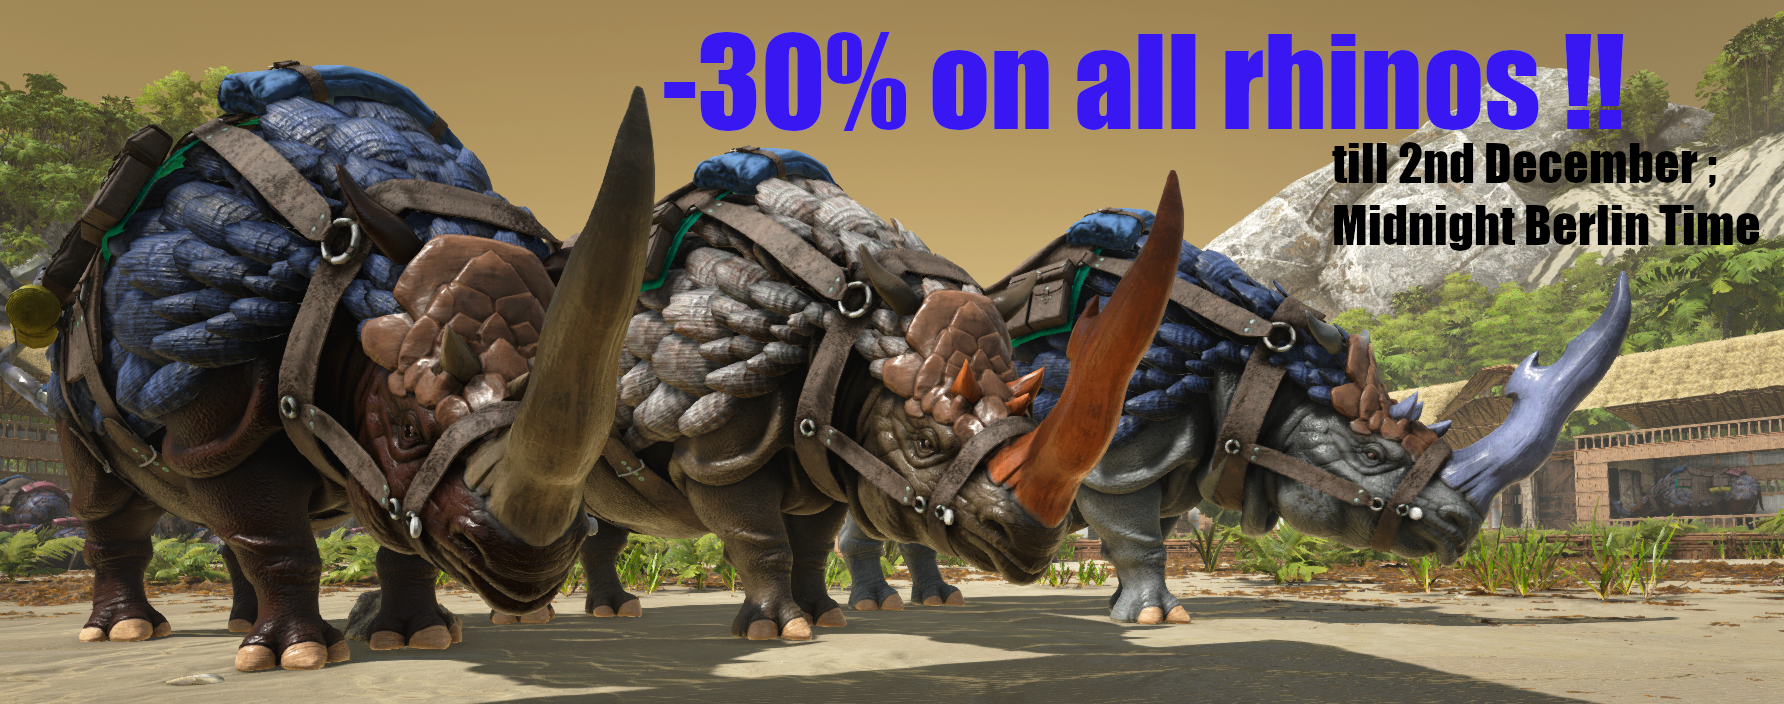 Rhinos_event.png